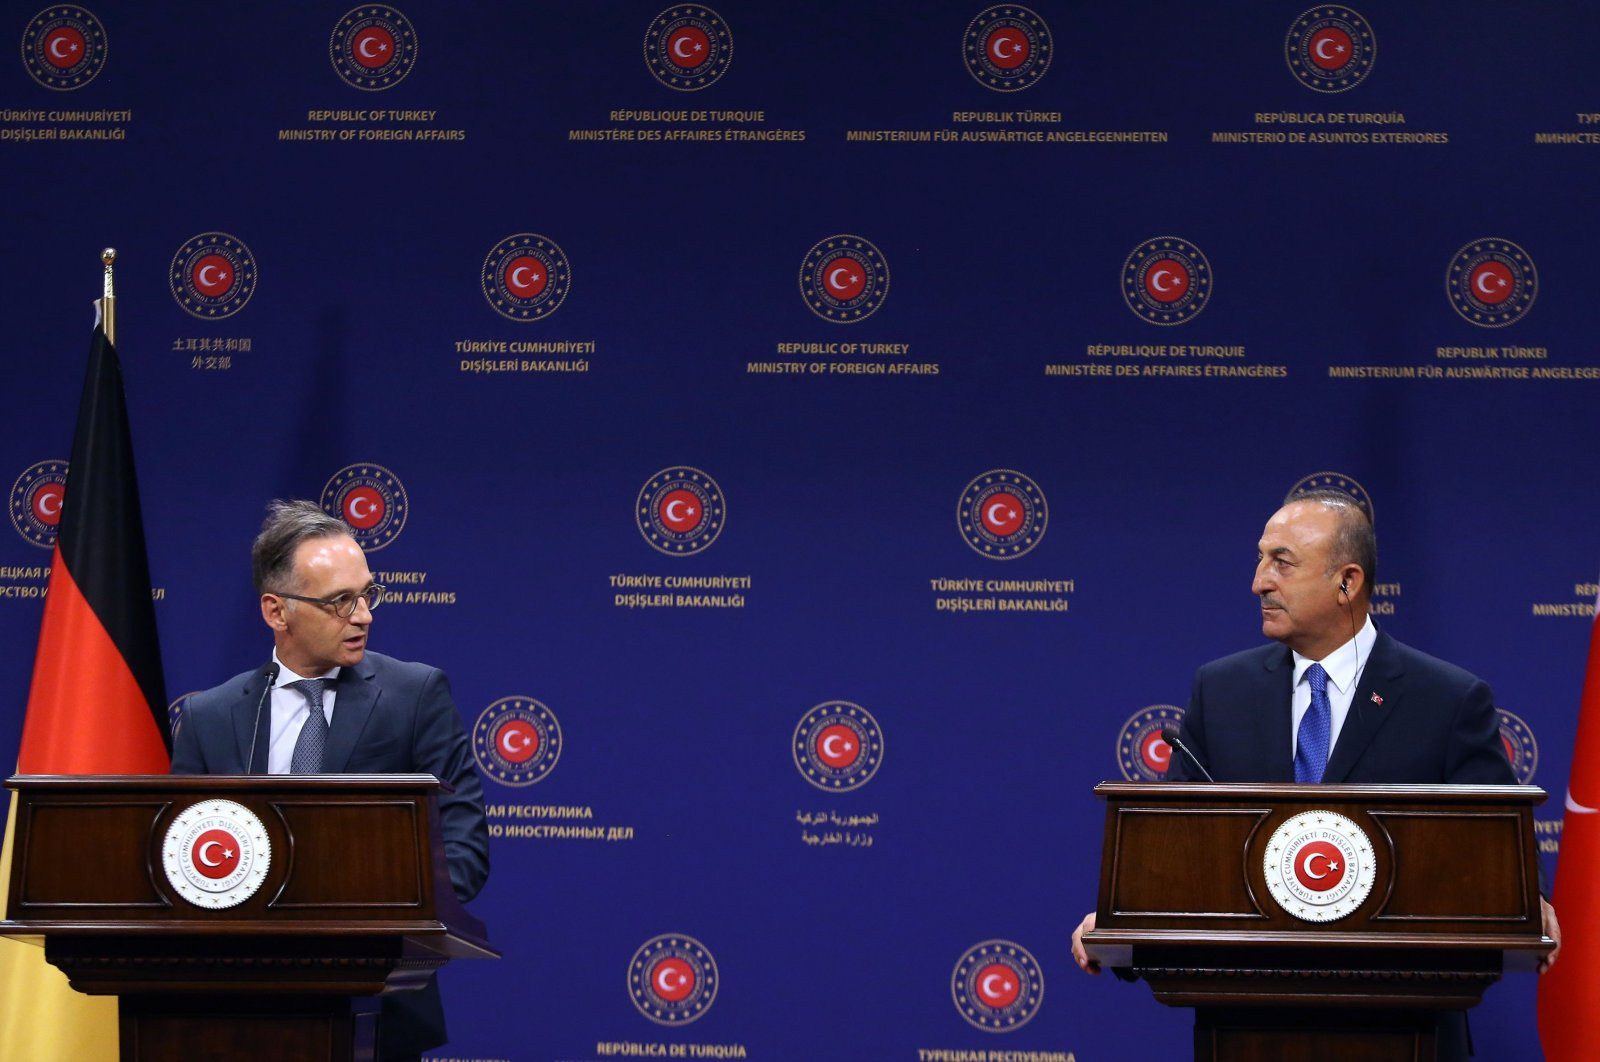 Turkish Foreign Affairs Minister Mevlüt Çavuşoğlu (R) and German Foreign Affairs Minister Heiko Maas (L) hold a joint press conference following their meeting at the Turkish Foreign Ministry in Ankara on Aug. 25, 2020. (AFP Photo)